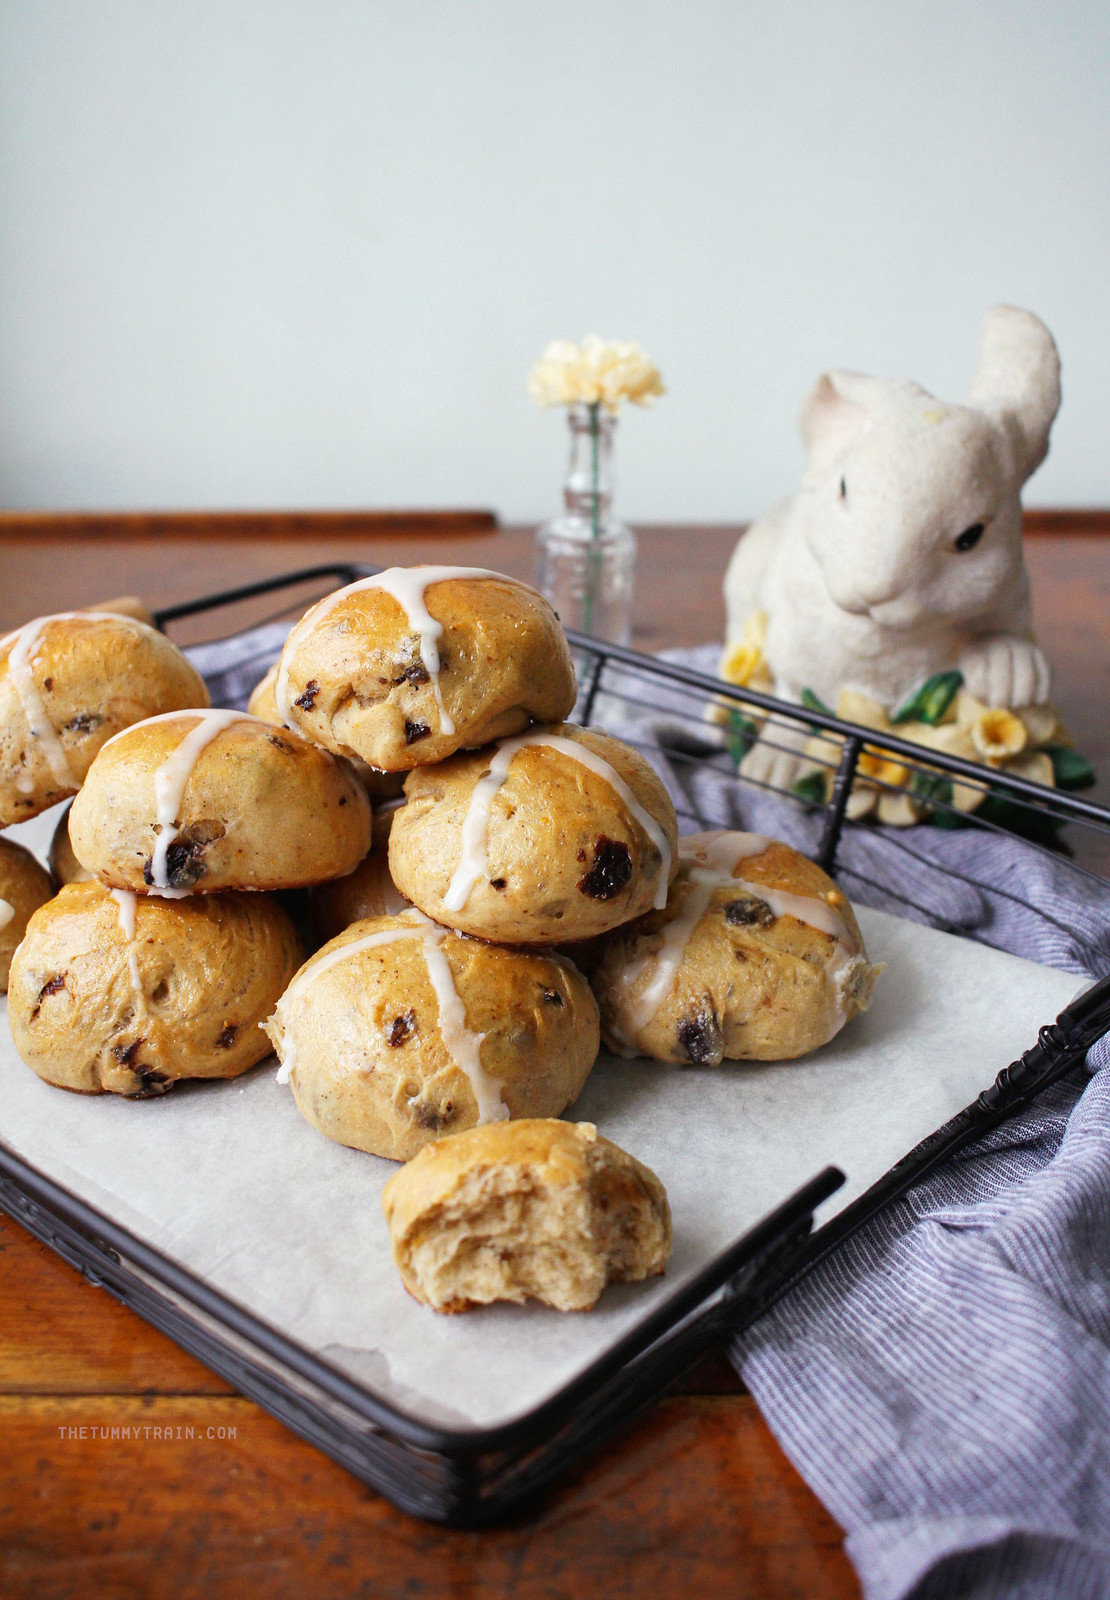 25555442570 28d8bdb7fc h - Taking an Easter classic up a notch with Rum Raisin Hot Cross Buns and KitchenAid [VIDEO]